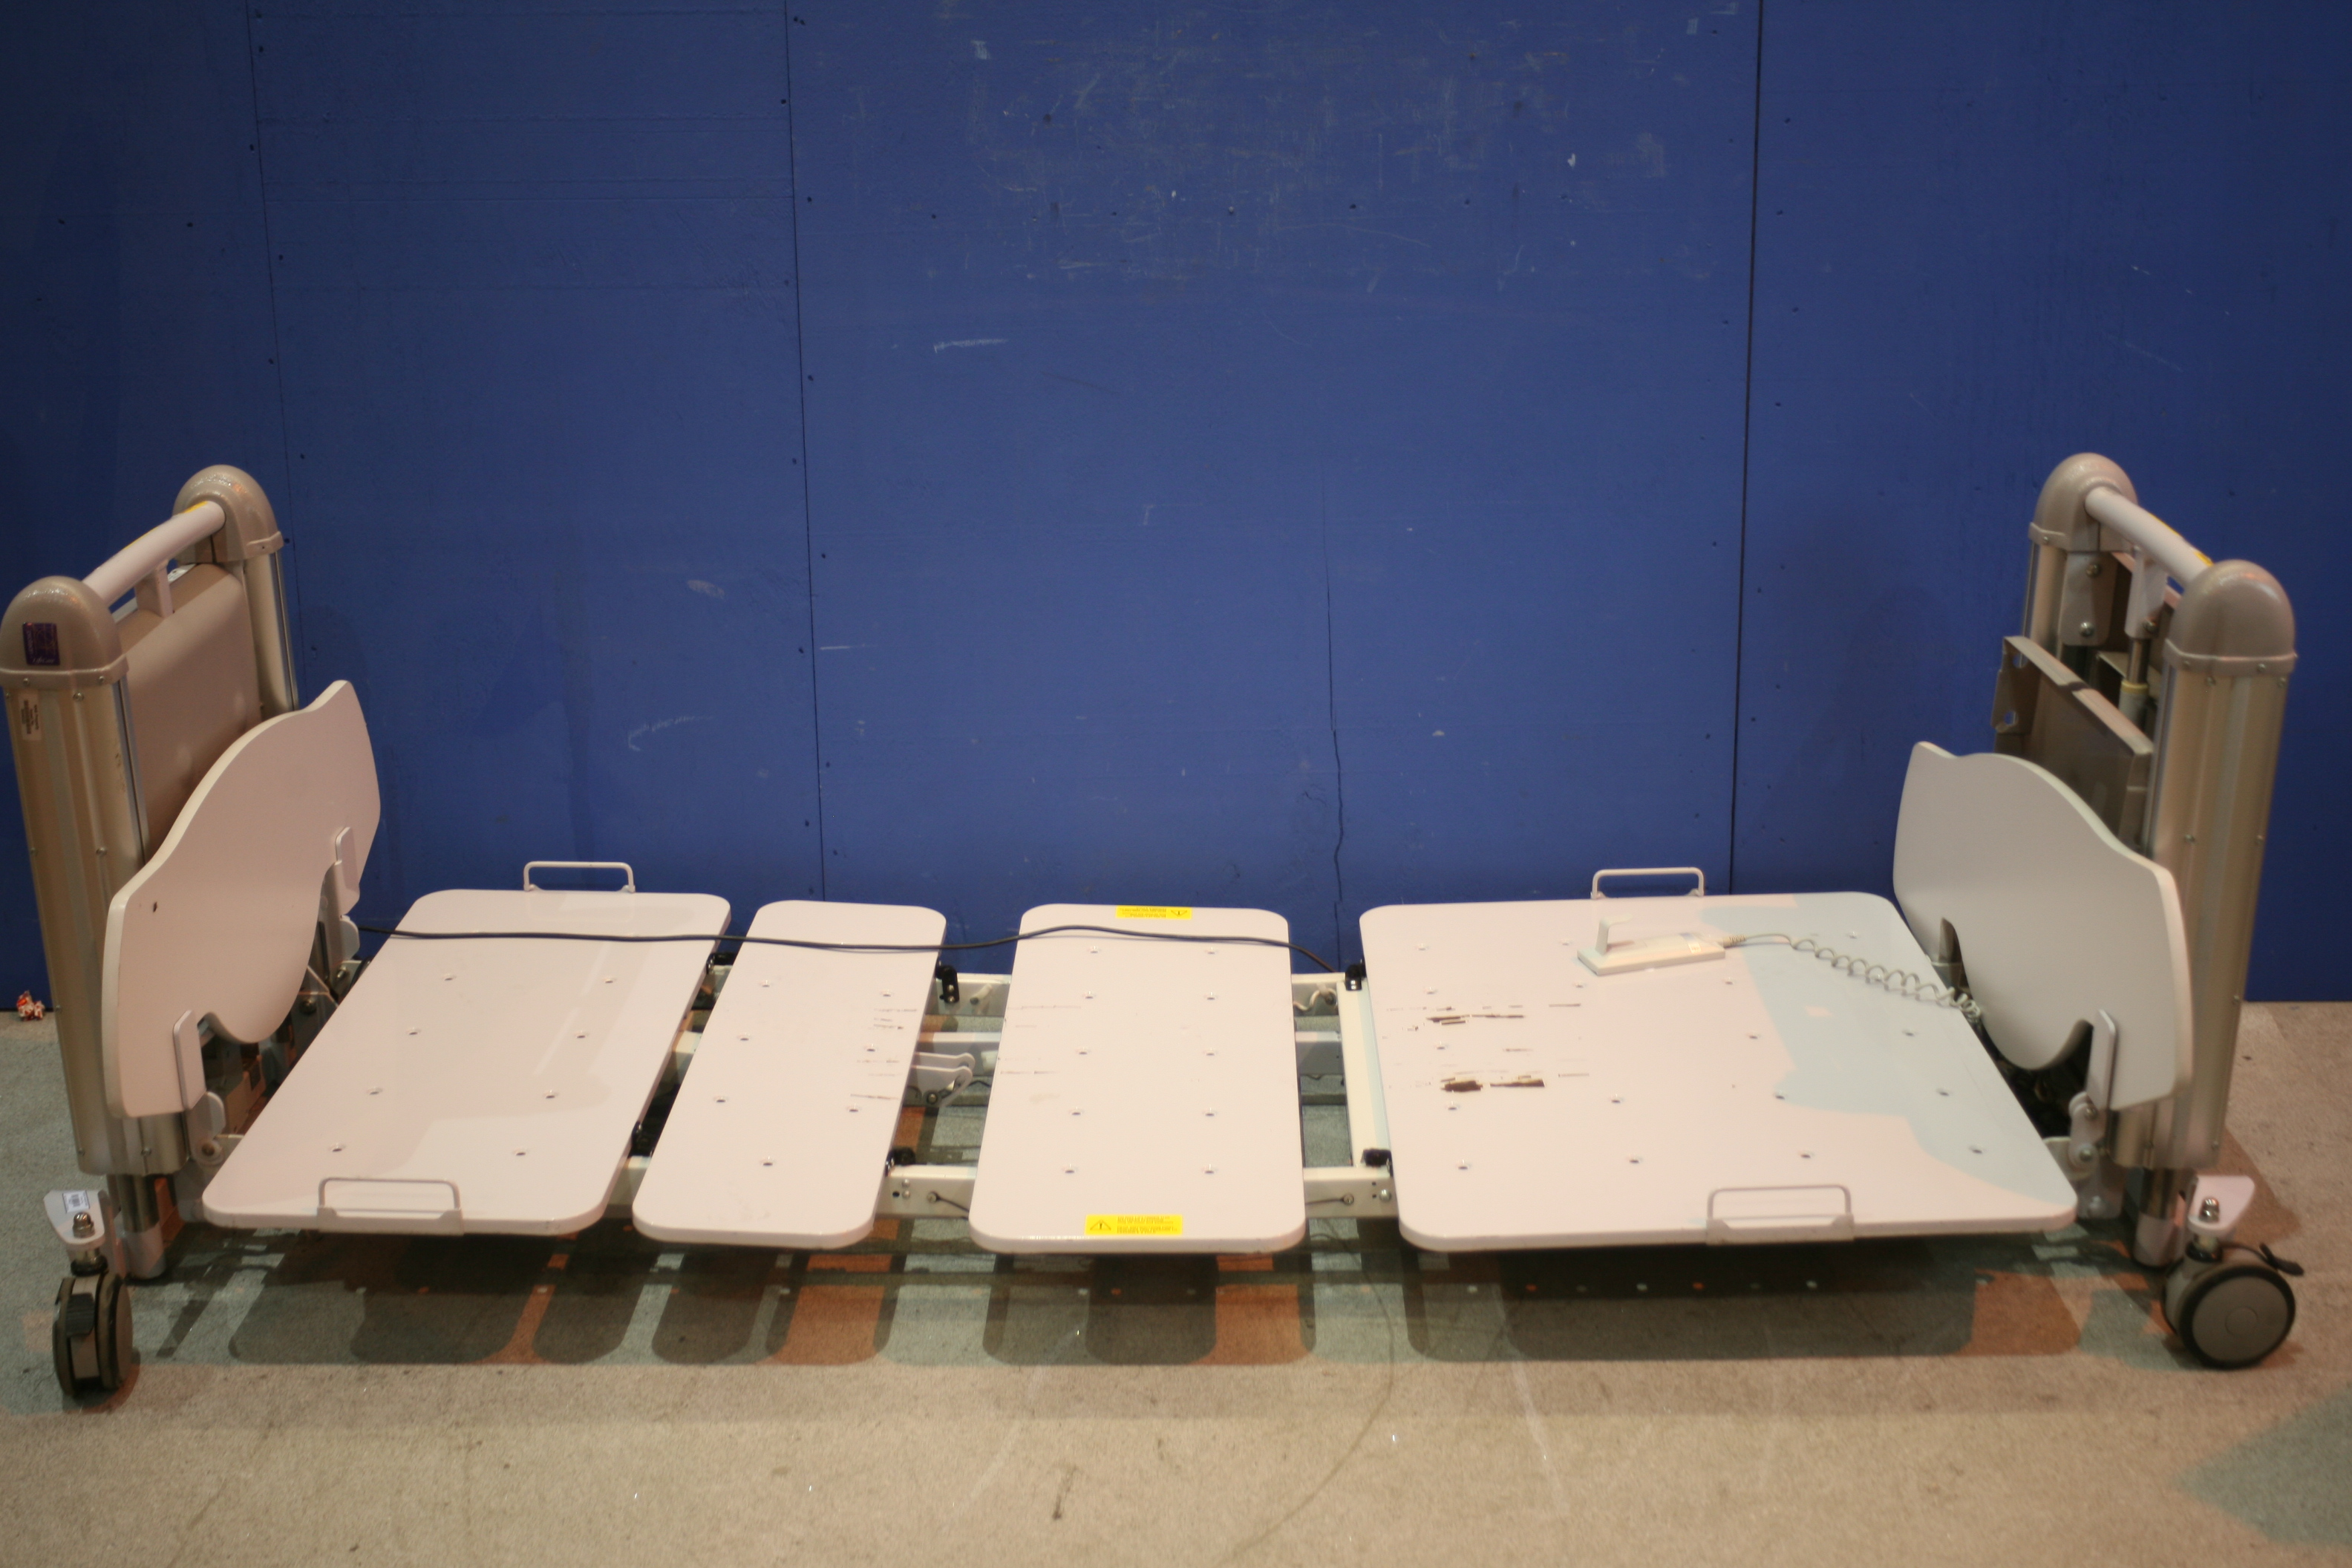 Lot 119 - Protean Liftcare Hi-Lo Low Profile Hospital Bed